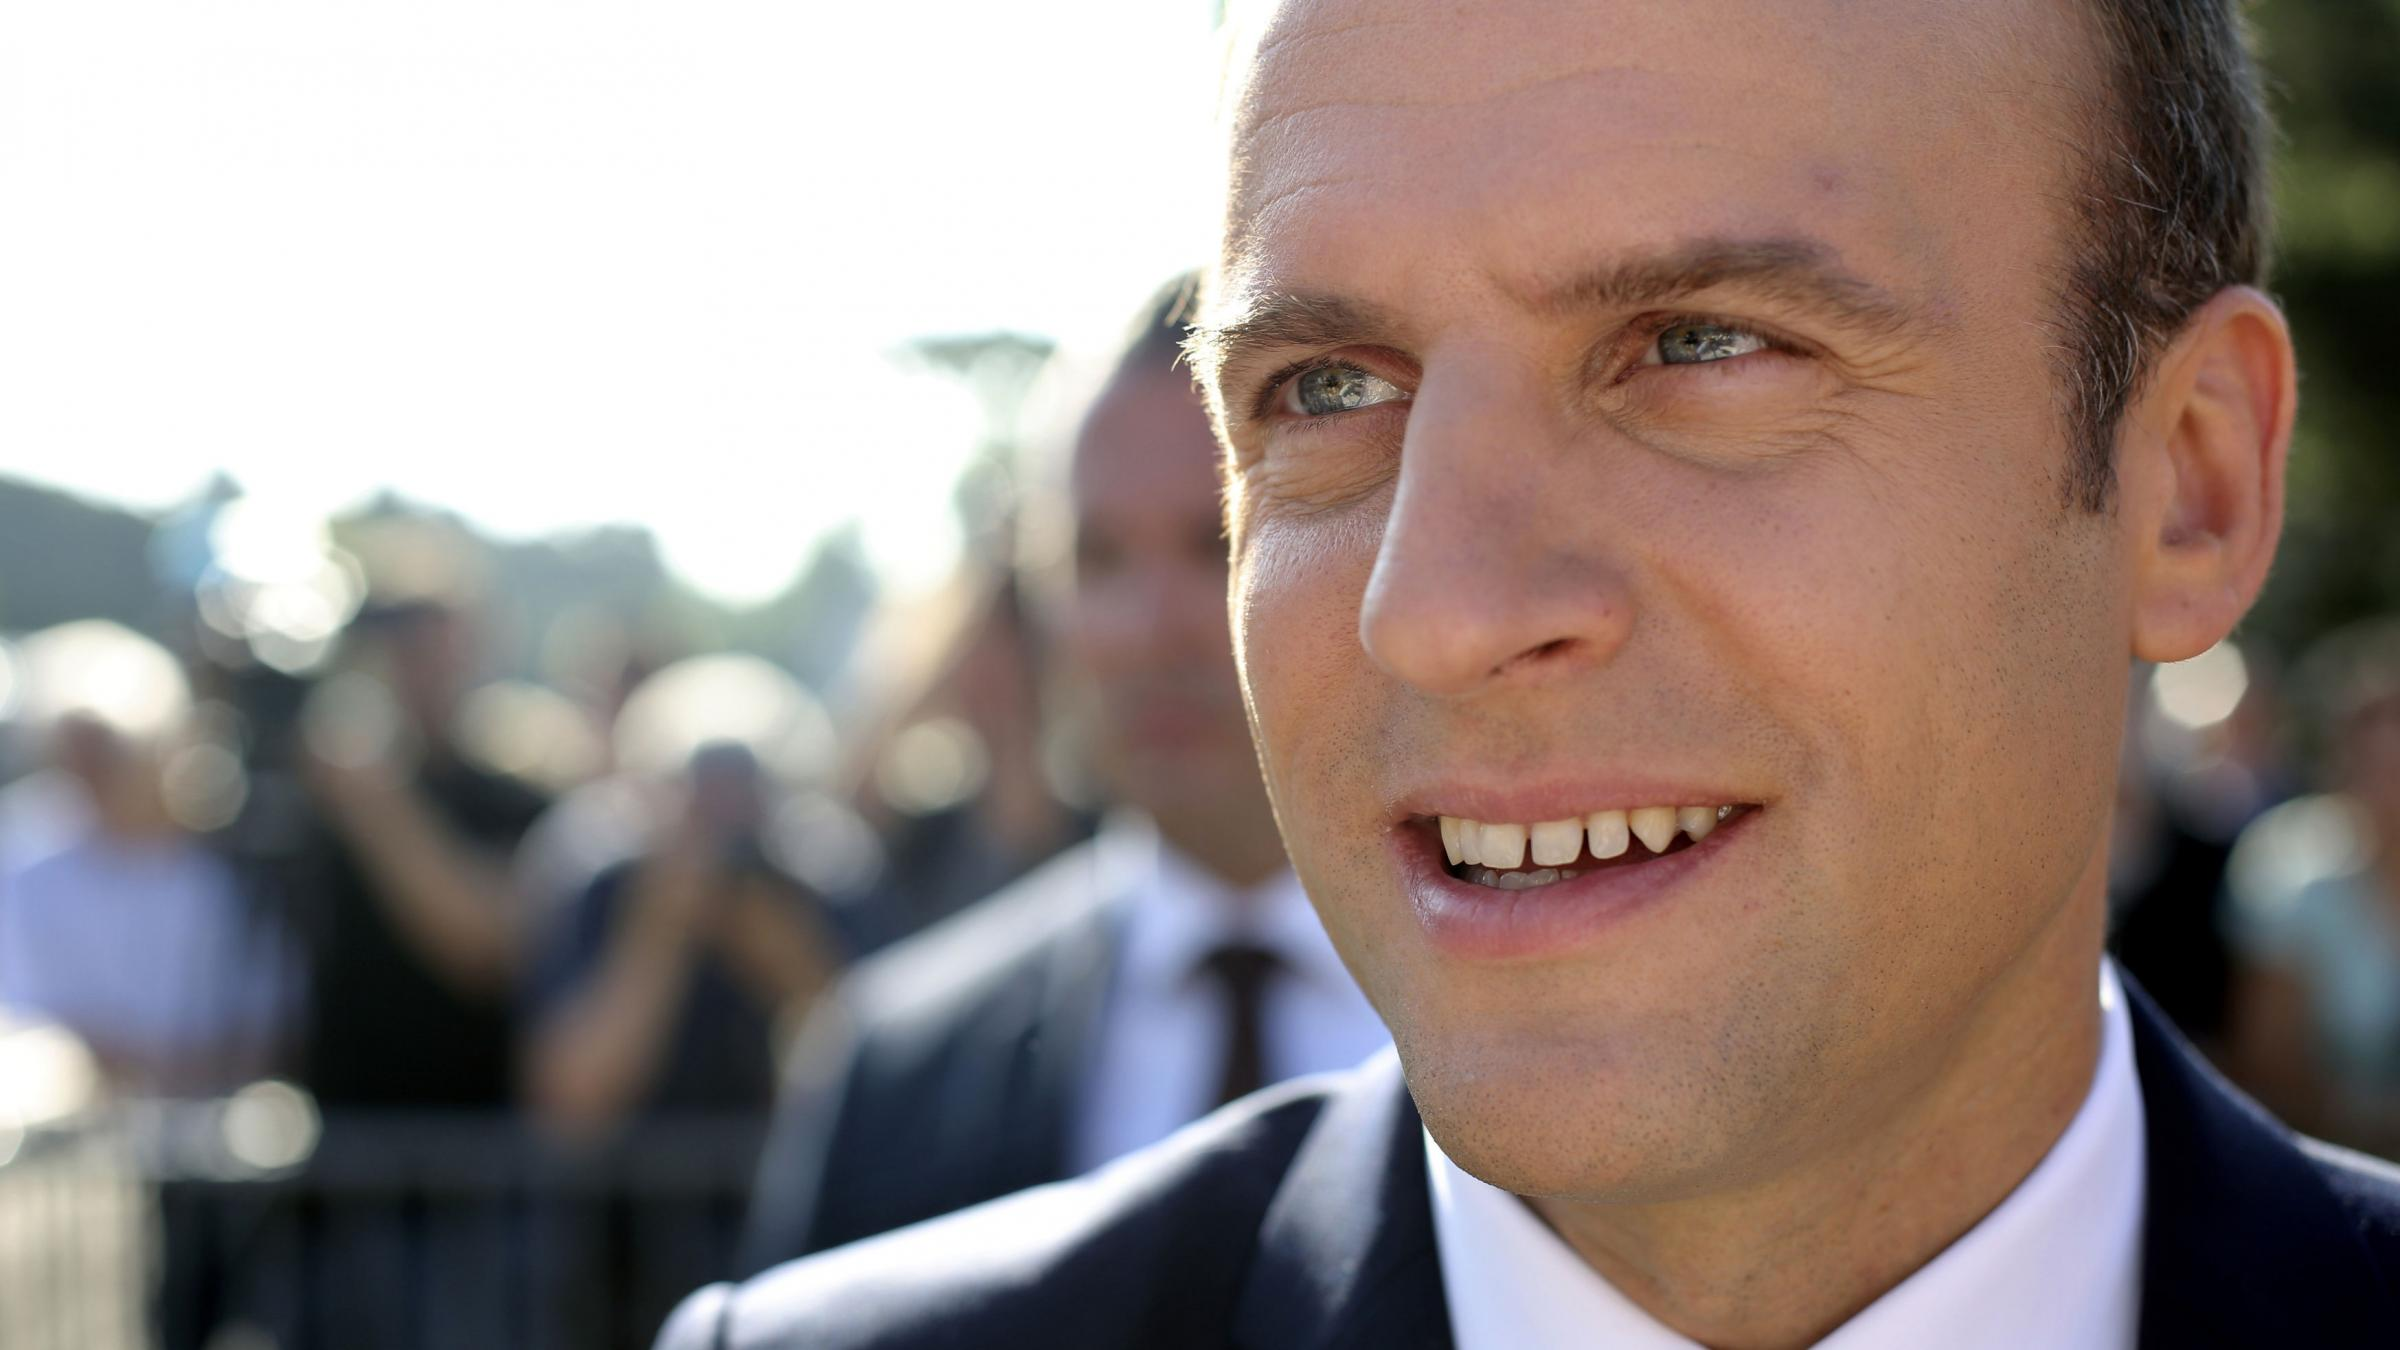 French President Emmanuel Macron to reshuffle government after huge parliament win